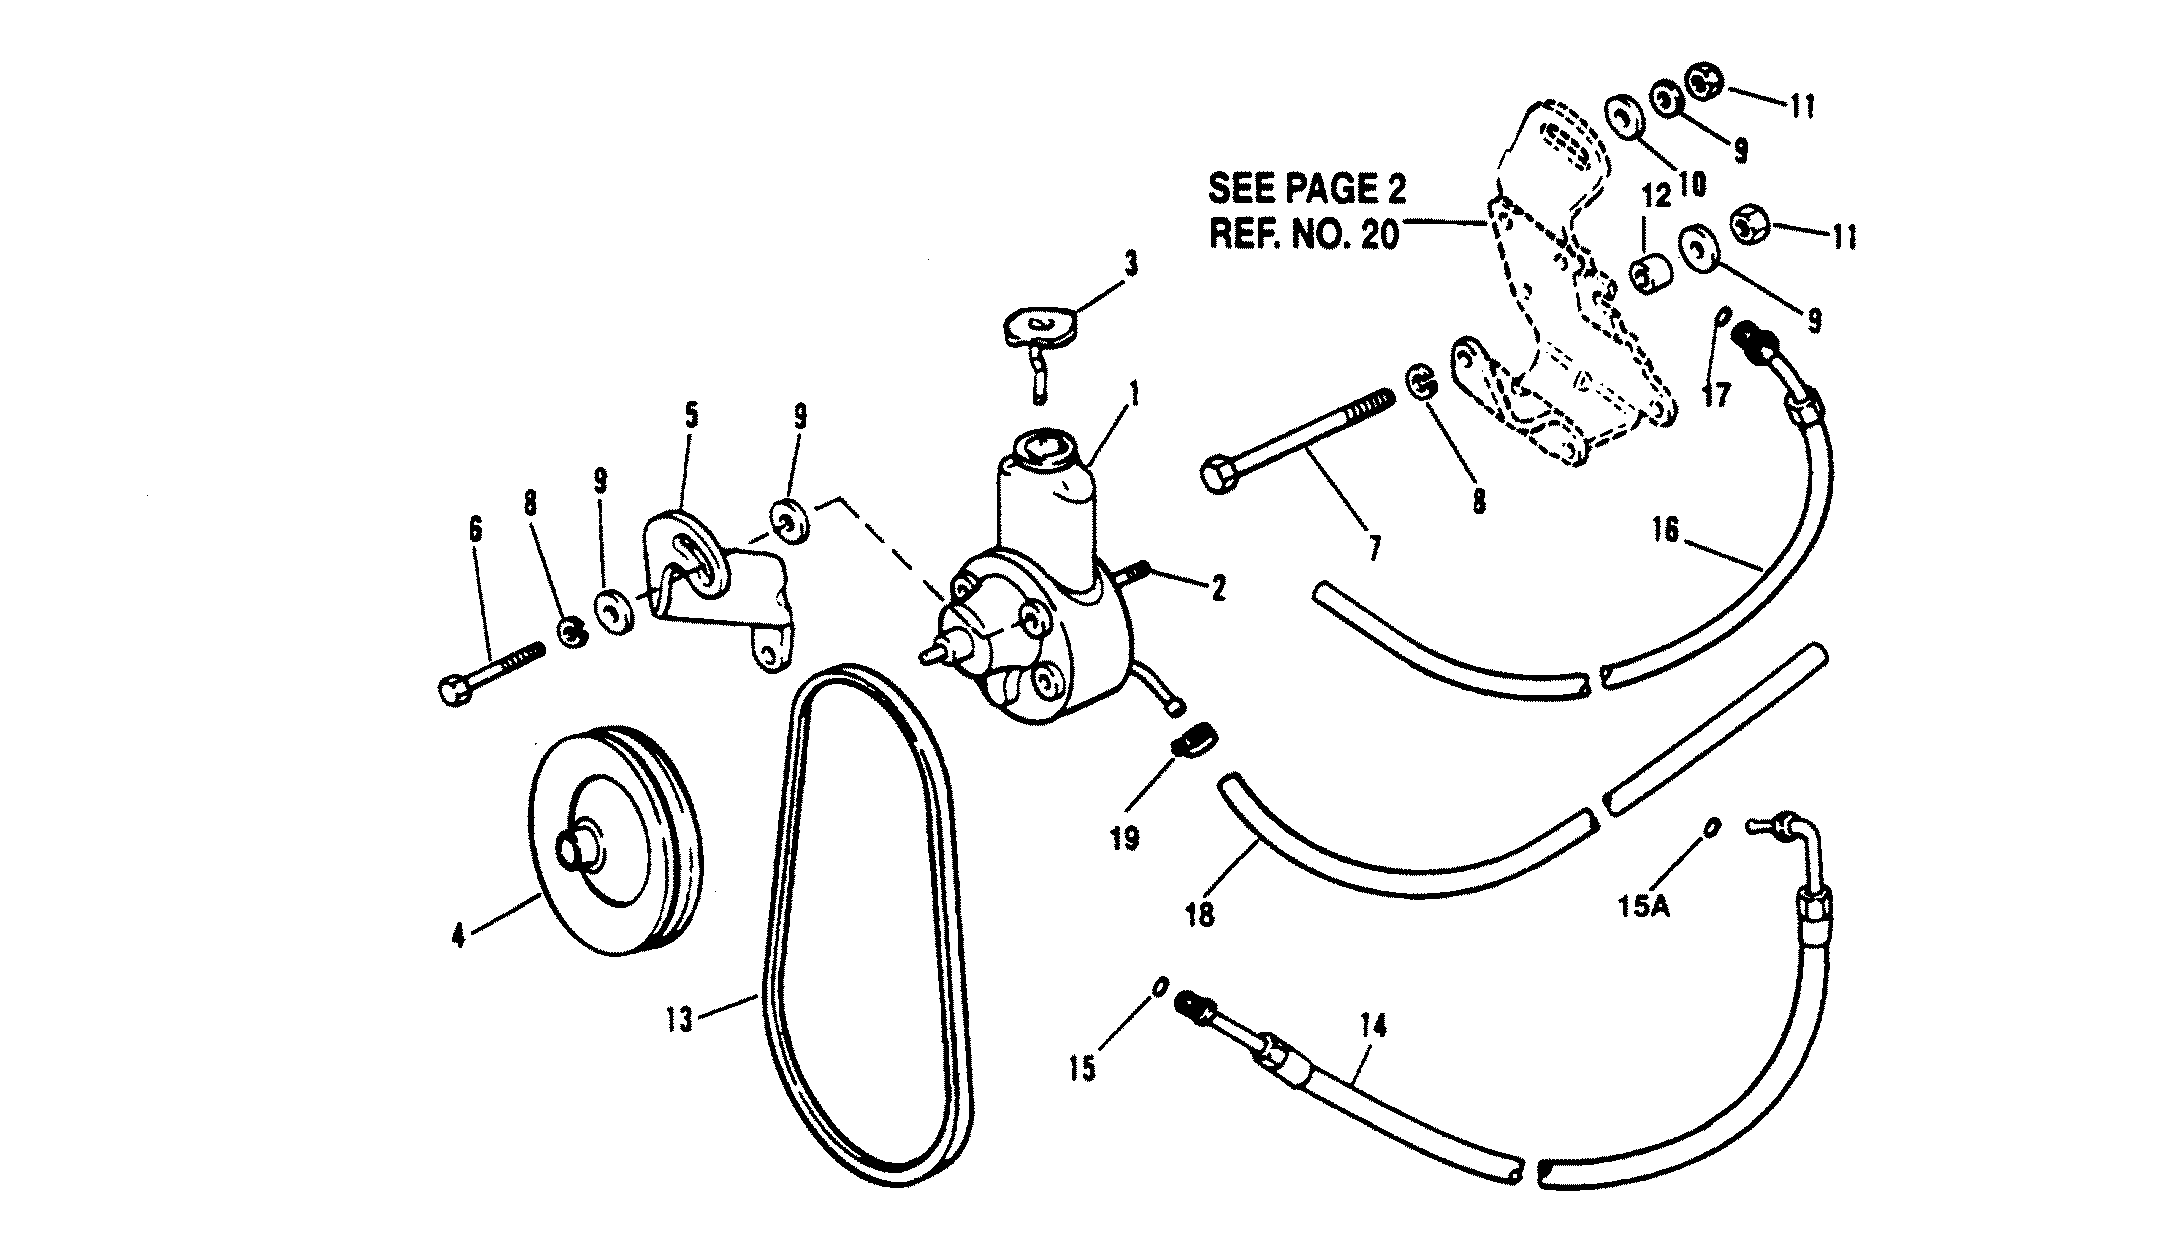 POWER STEERING COMPONENTS FOR MERCRUISER 5.7L ALPHA EFI